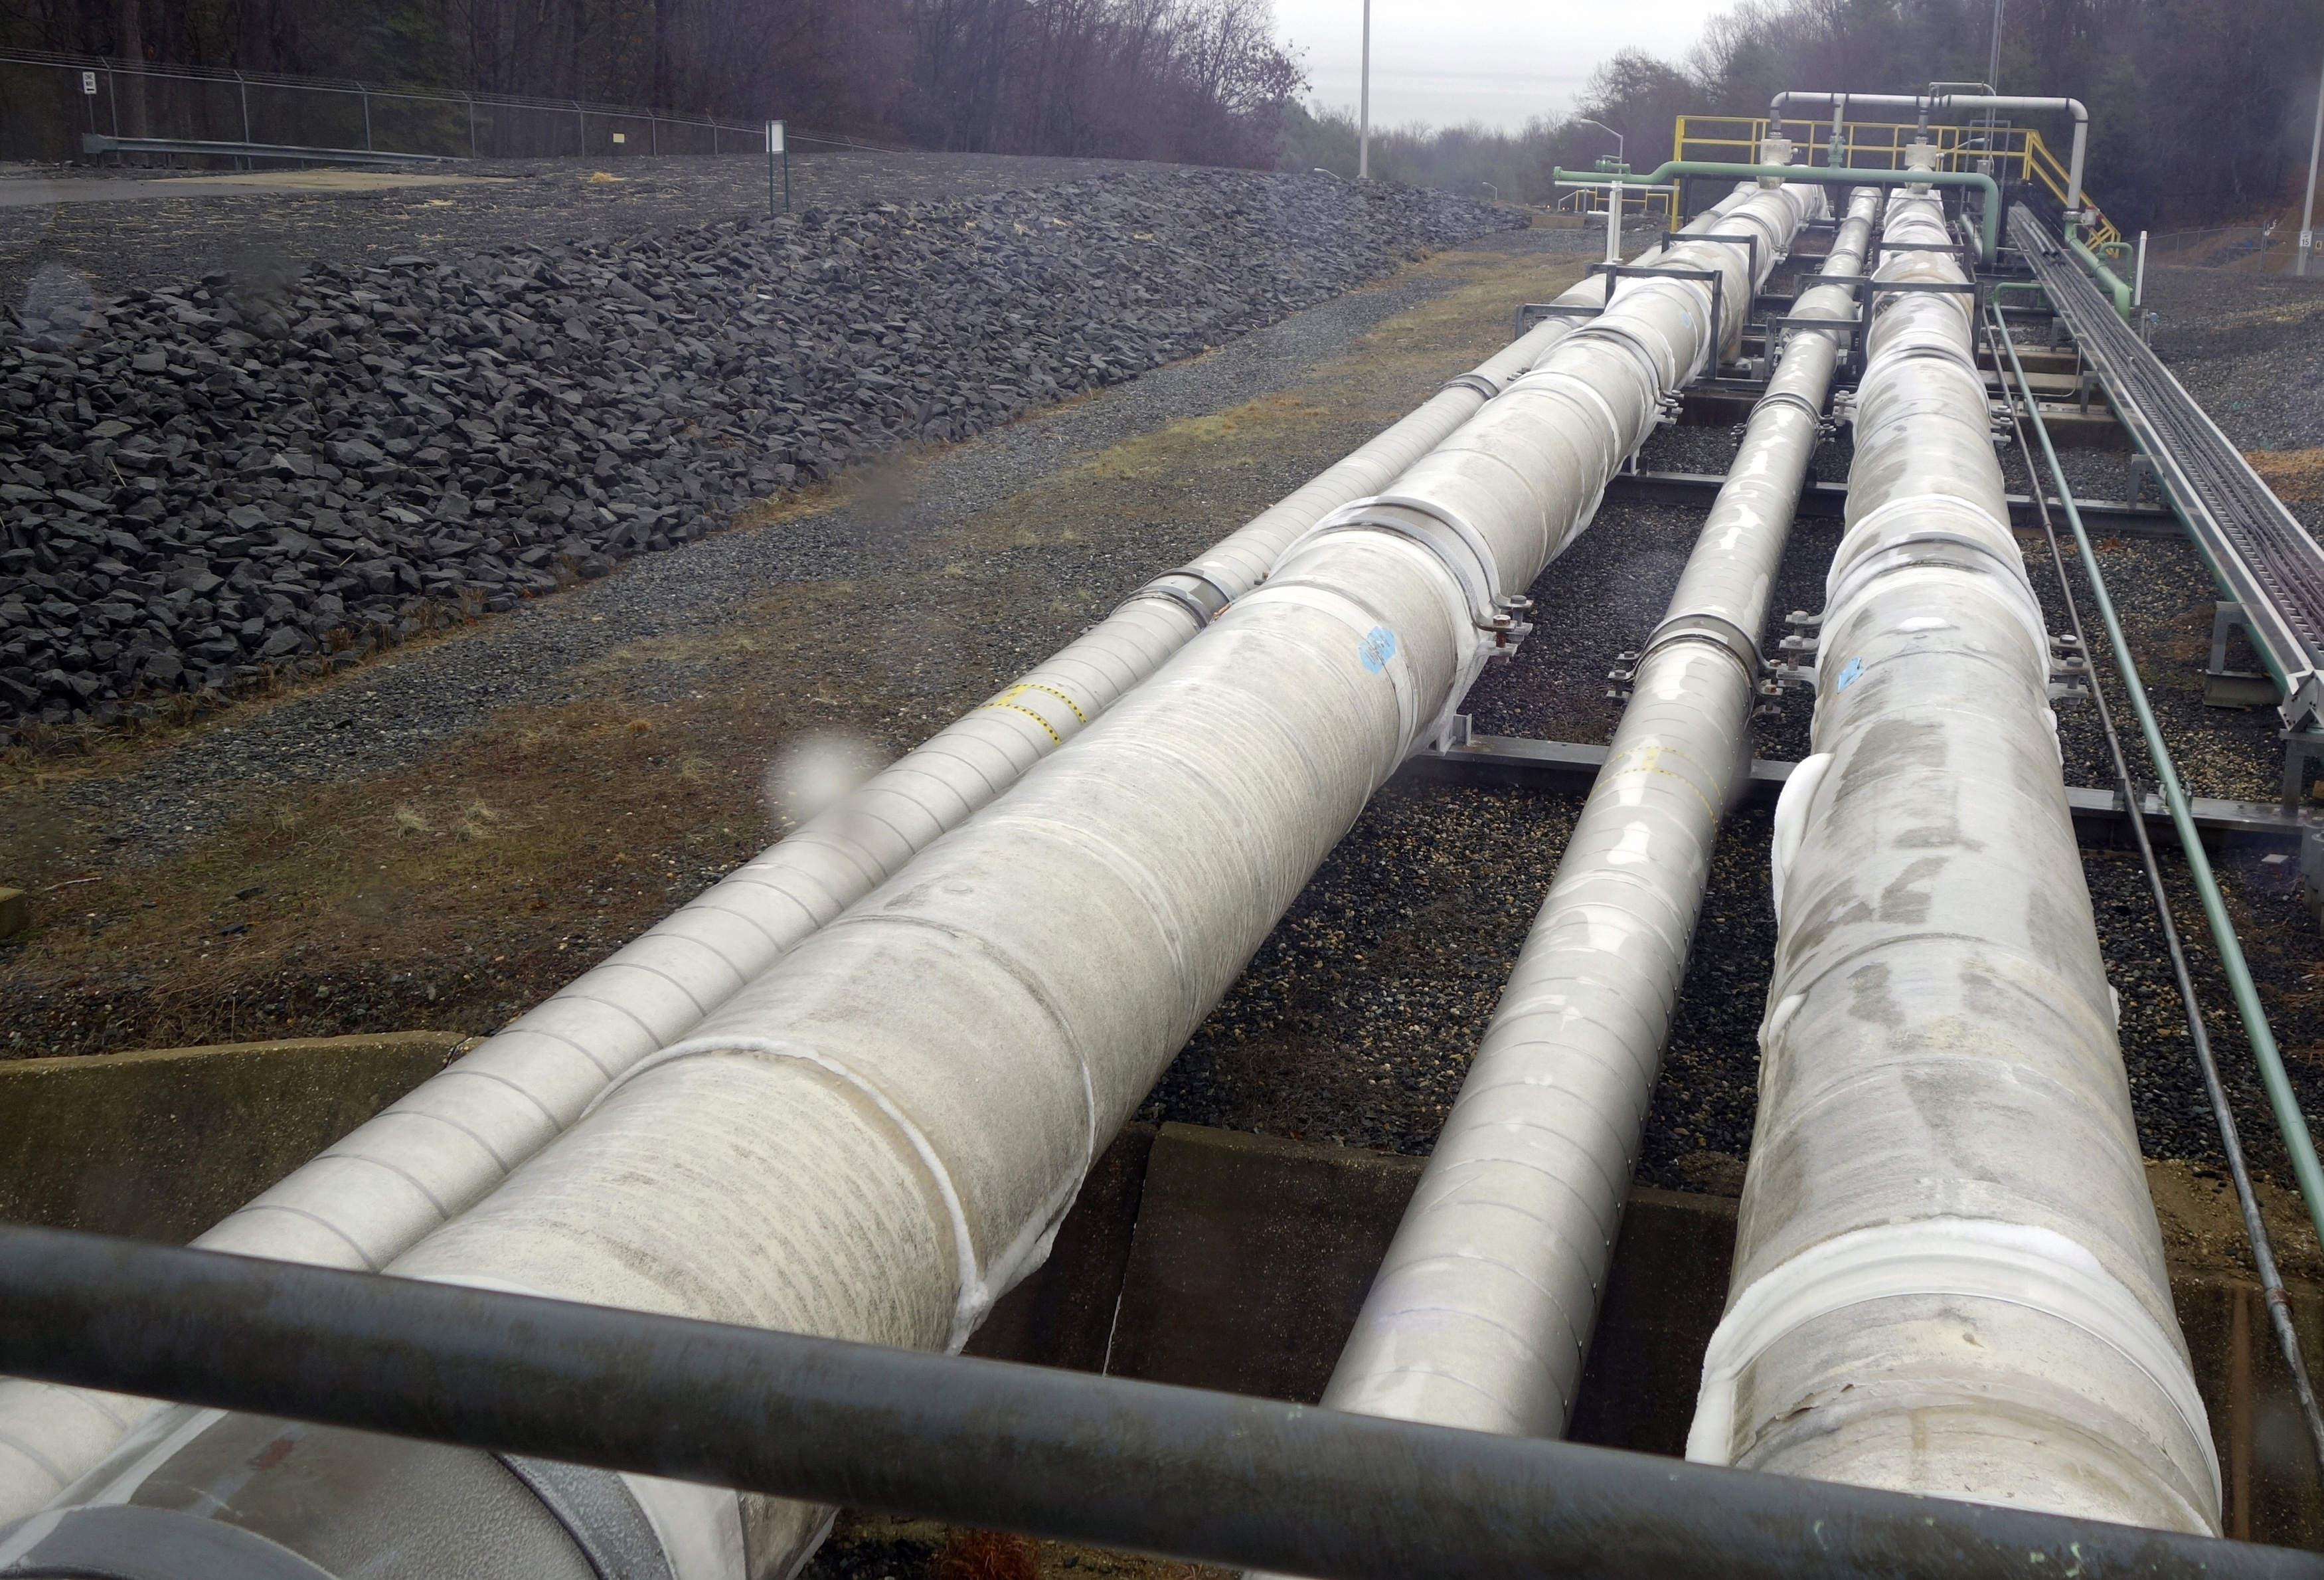 Pipes are seen at Dominion's Cove Point liquefied natural gas (LNG) plant on Maryland's Chesapeake Bay in this picture taken February 5, 2014.   REUTERS/Tim Gardner